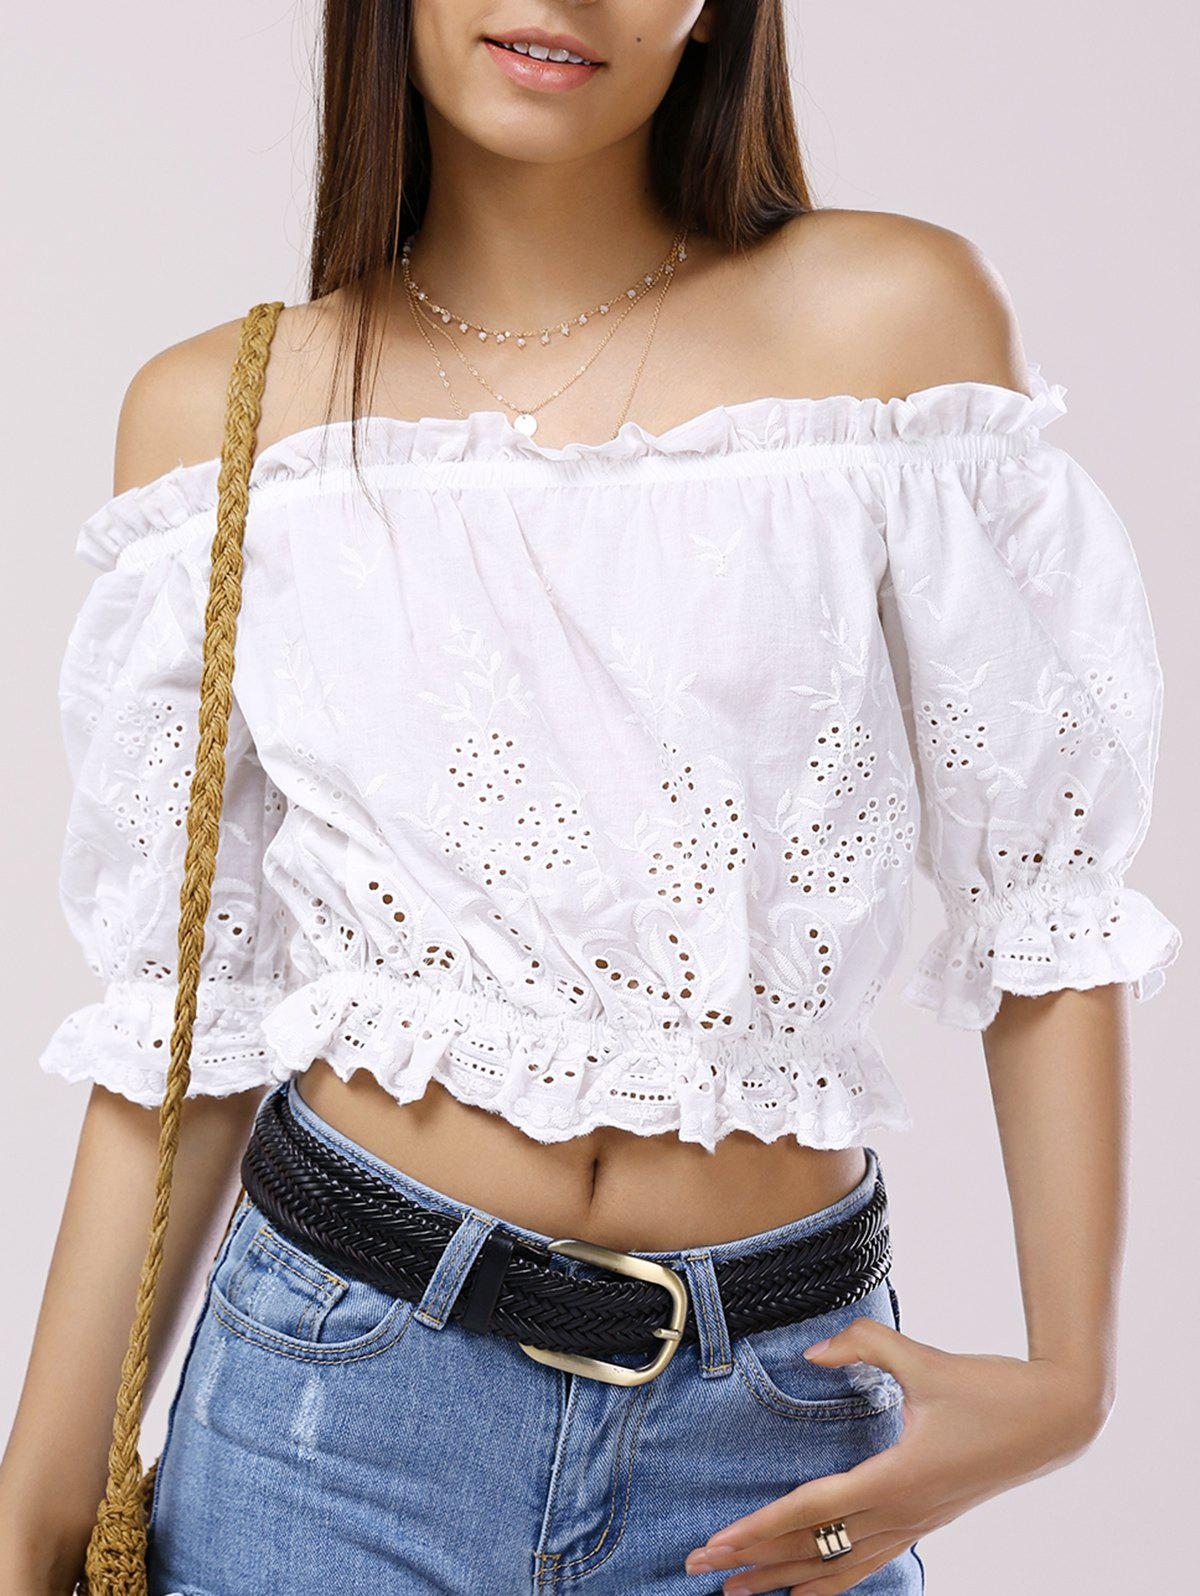 Fashionable Women's Off-The-Shoulder 3/4 Sleeve Crop Top - WHITE L